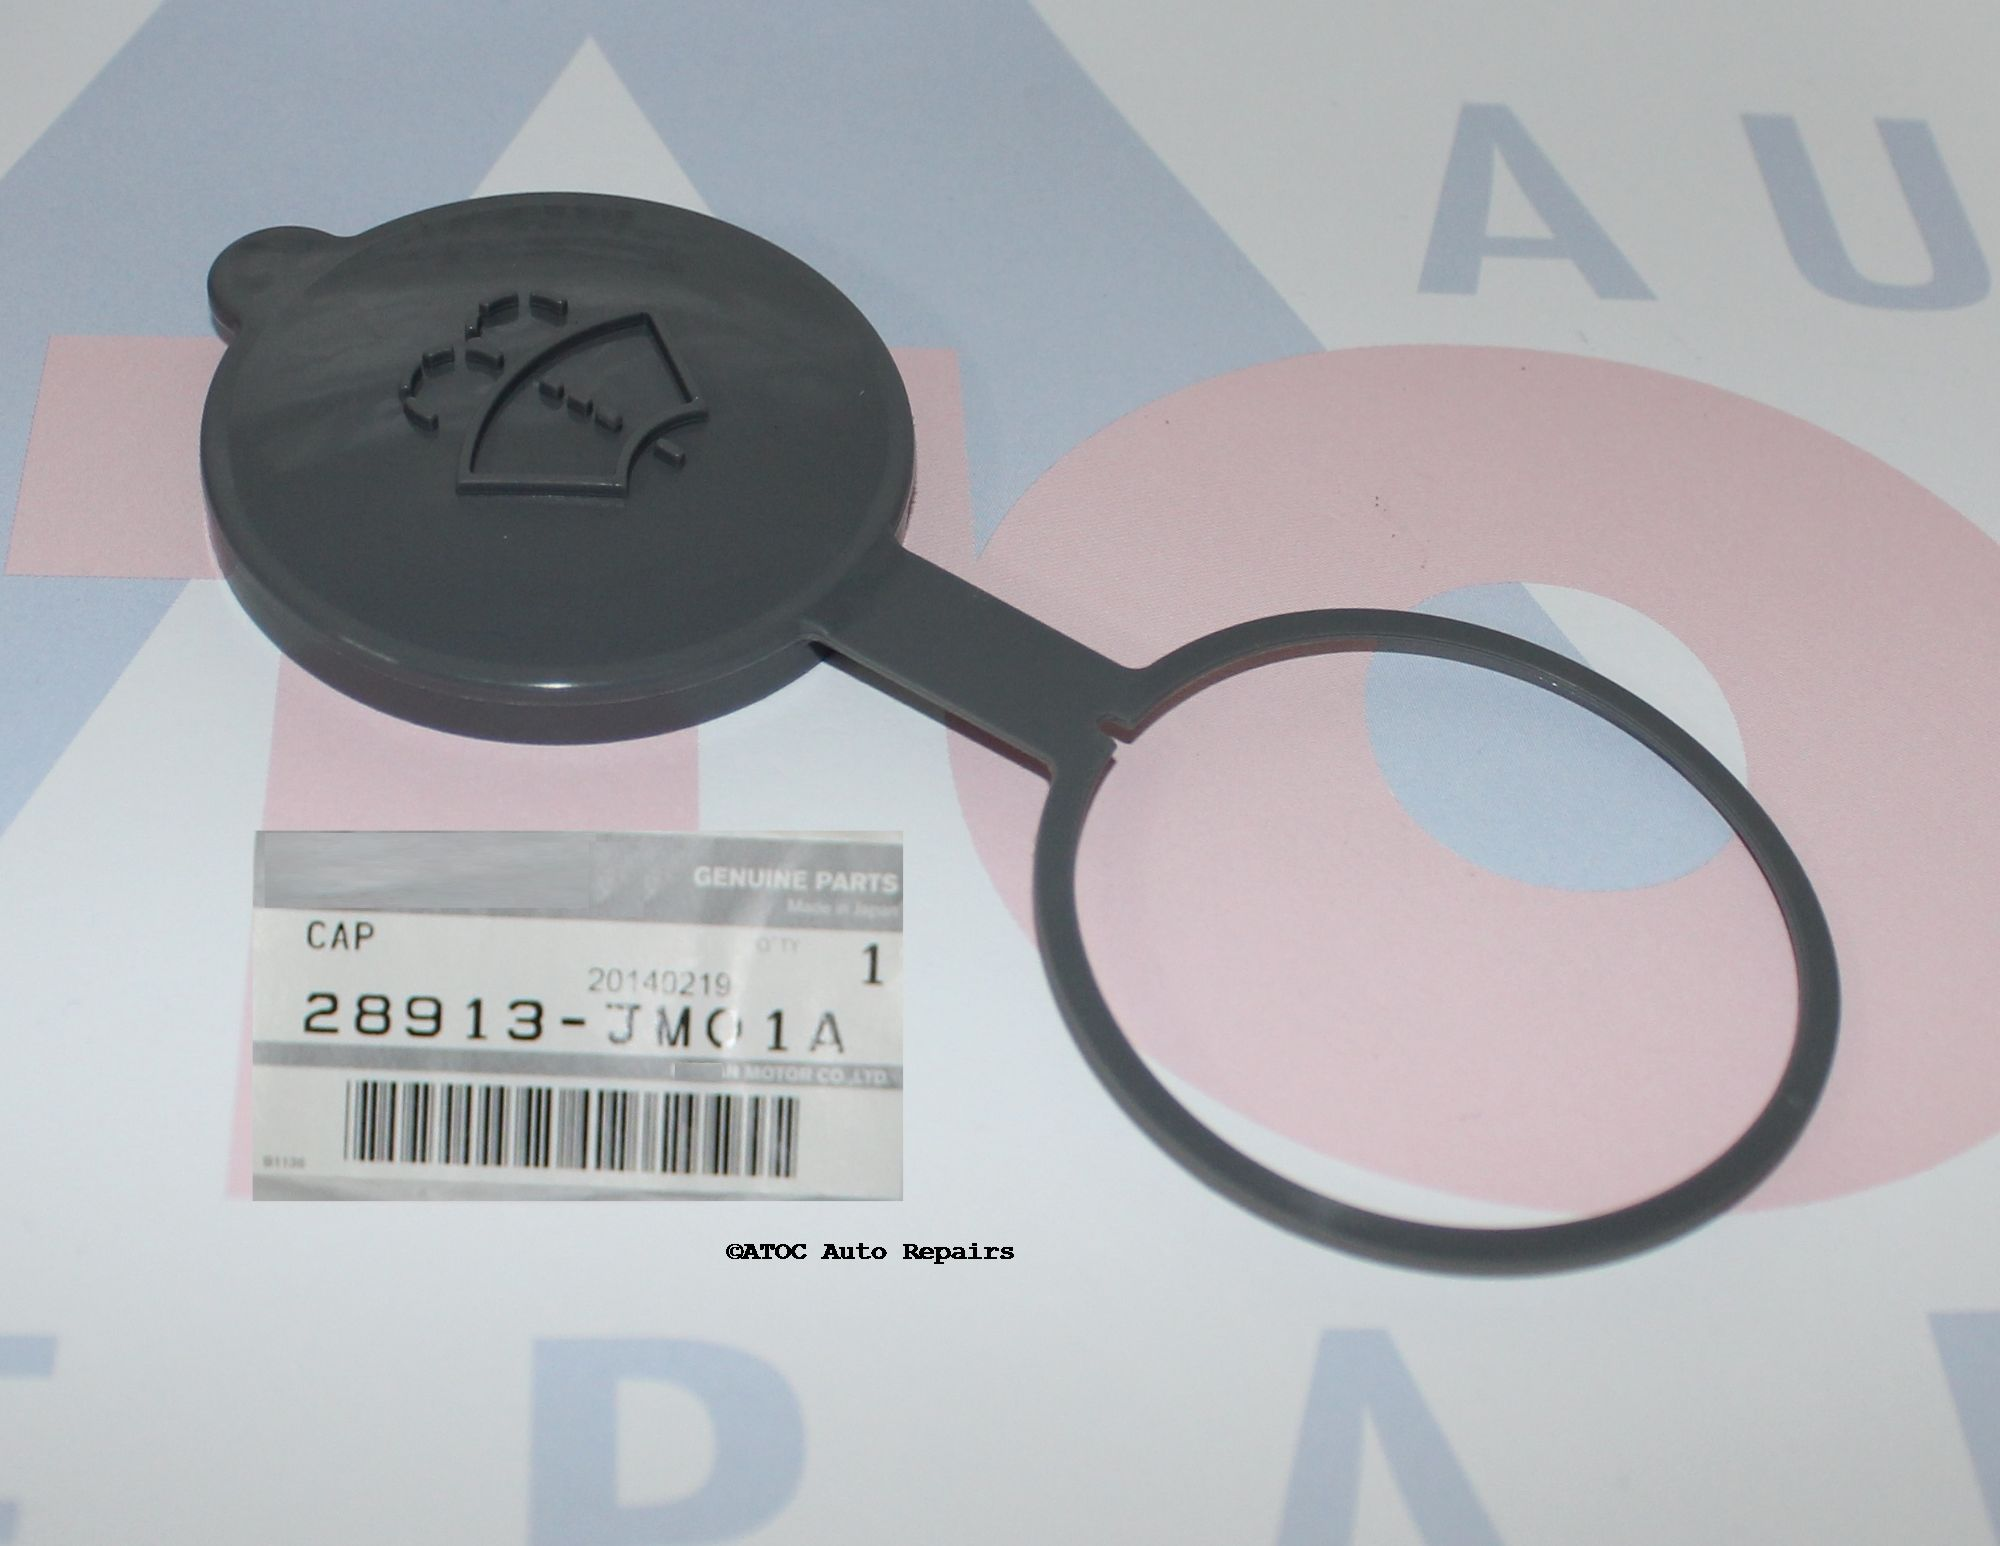 OEM Genuine windscreen washer bottle lid to fit Nissan GQ and GU Patrols